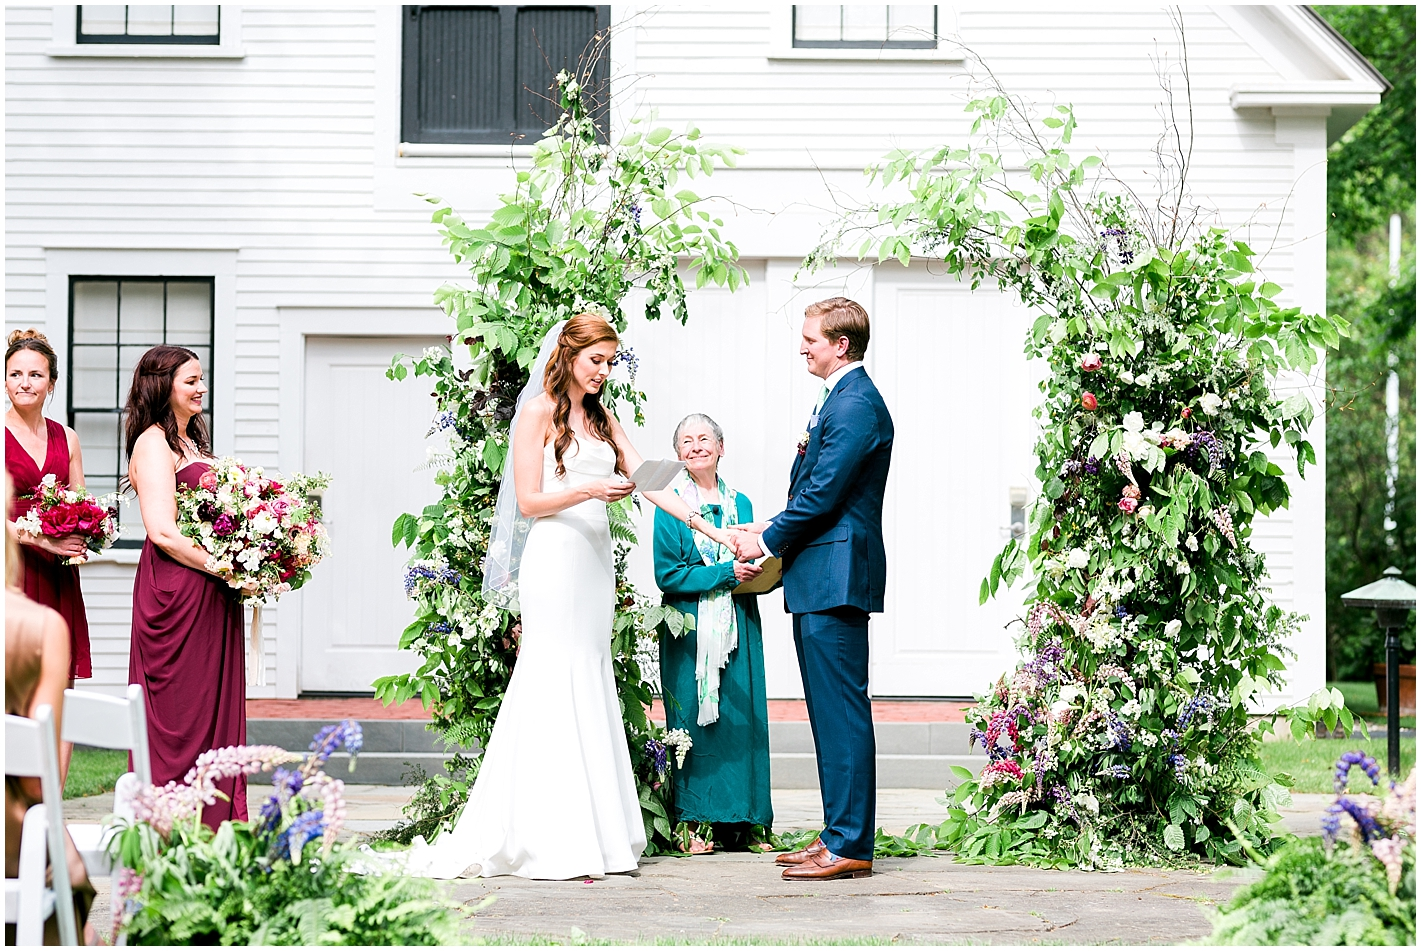 Hand-Written Vows by Bride Photos by Alyssa Parker Photography